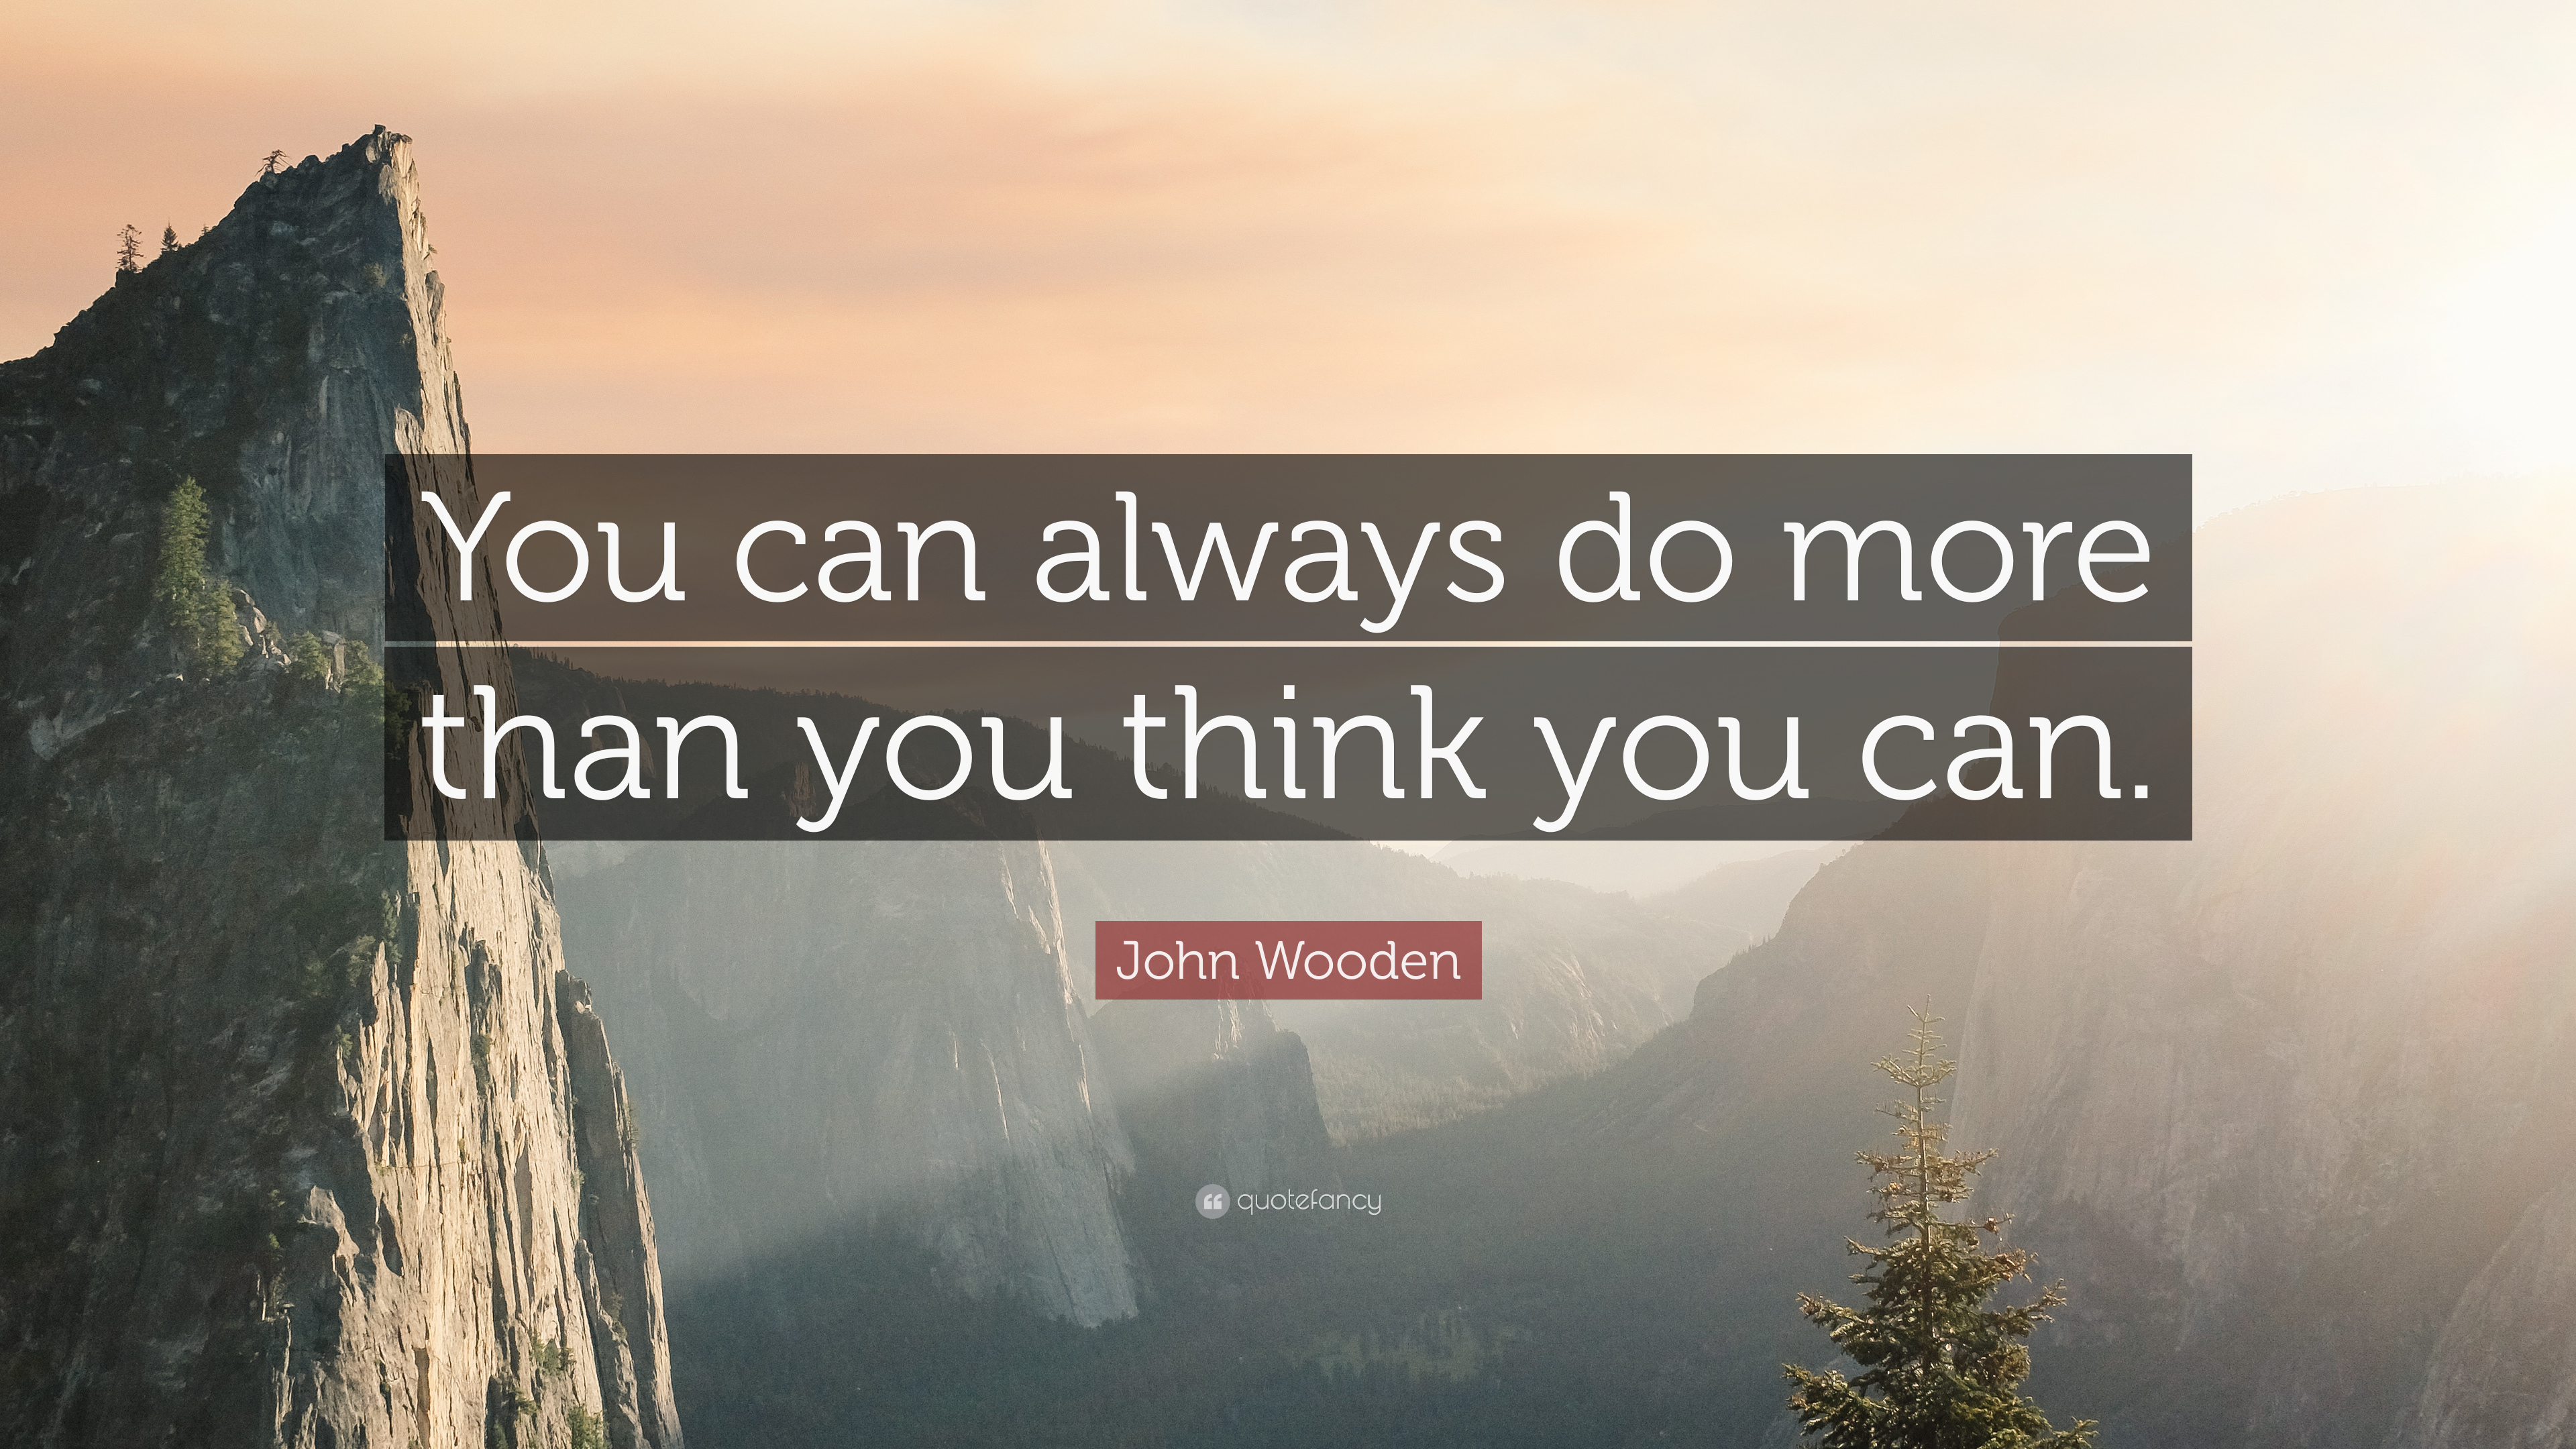 Theodore Roosevelt Wallpaper Quote John Wooden Quote You Can Always Do More Than You Think